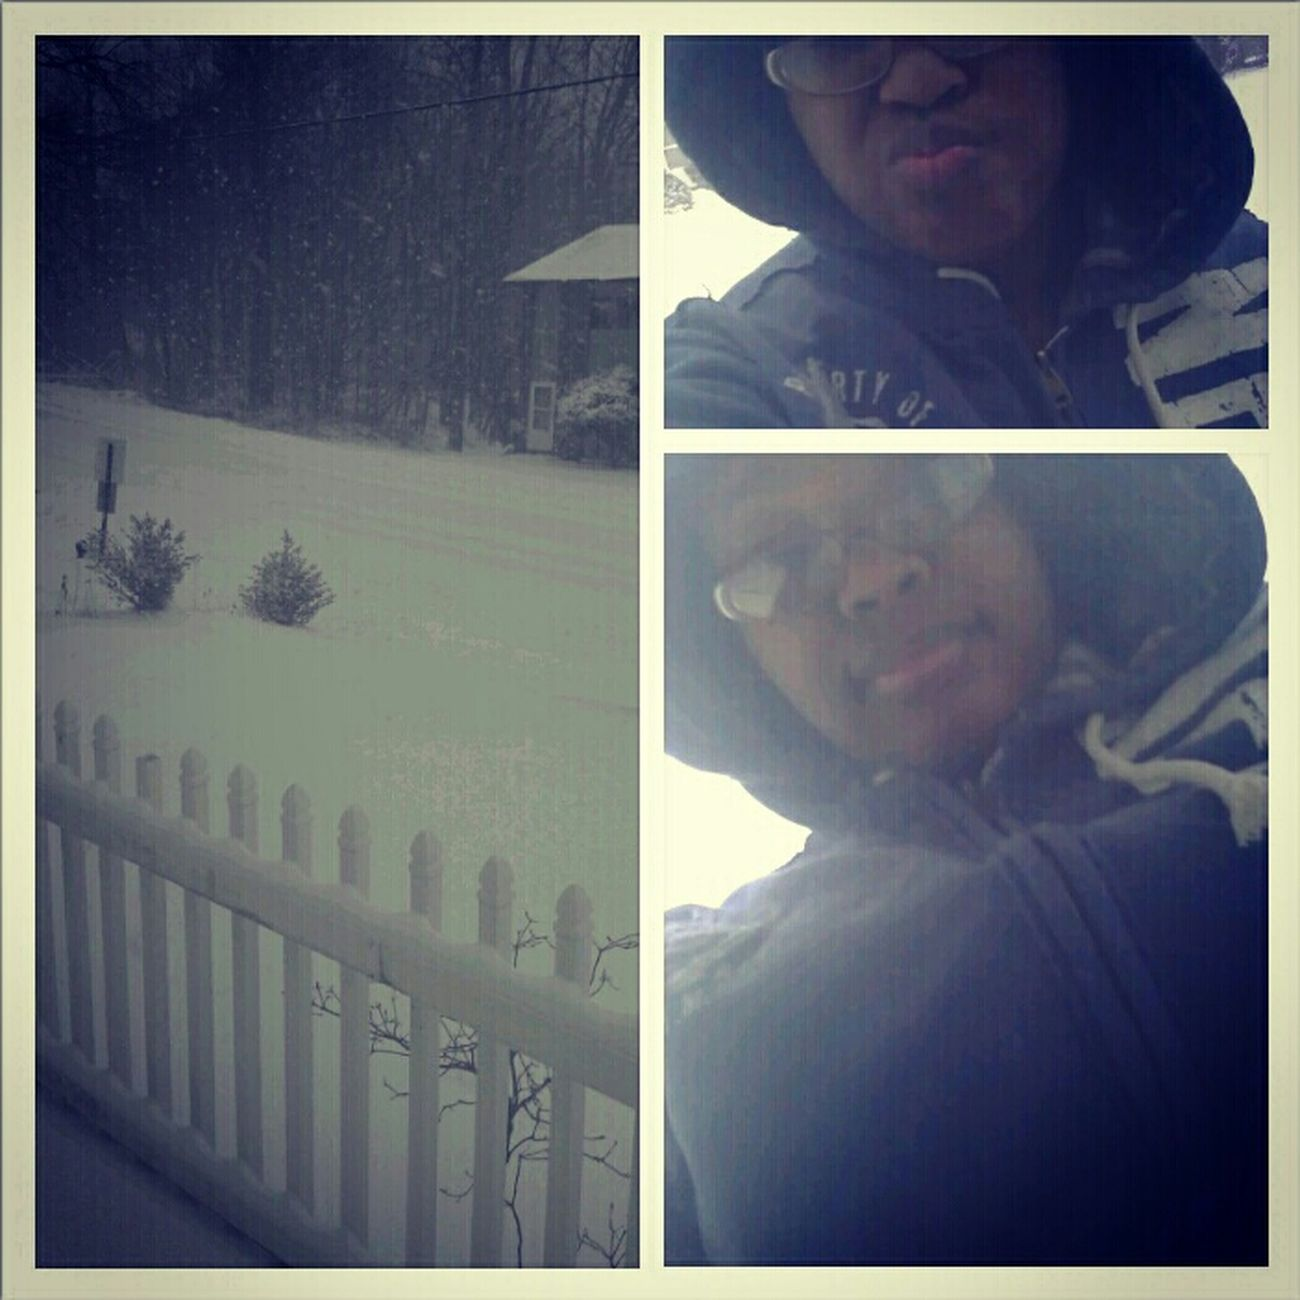 Real Niggas go out in this Weather lmaoo :p